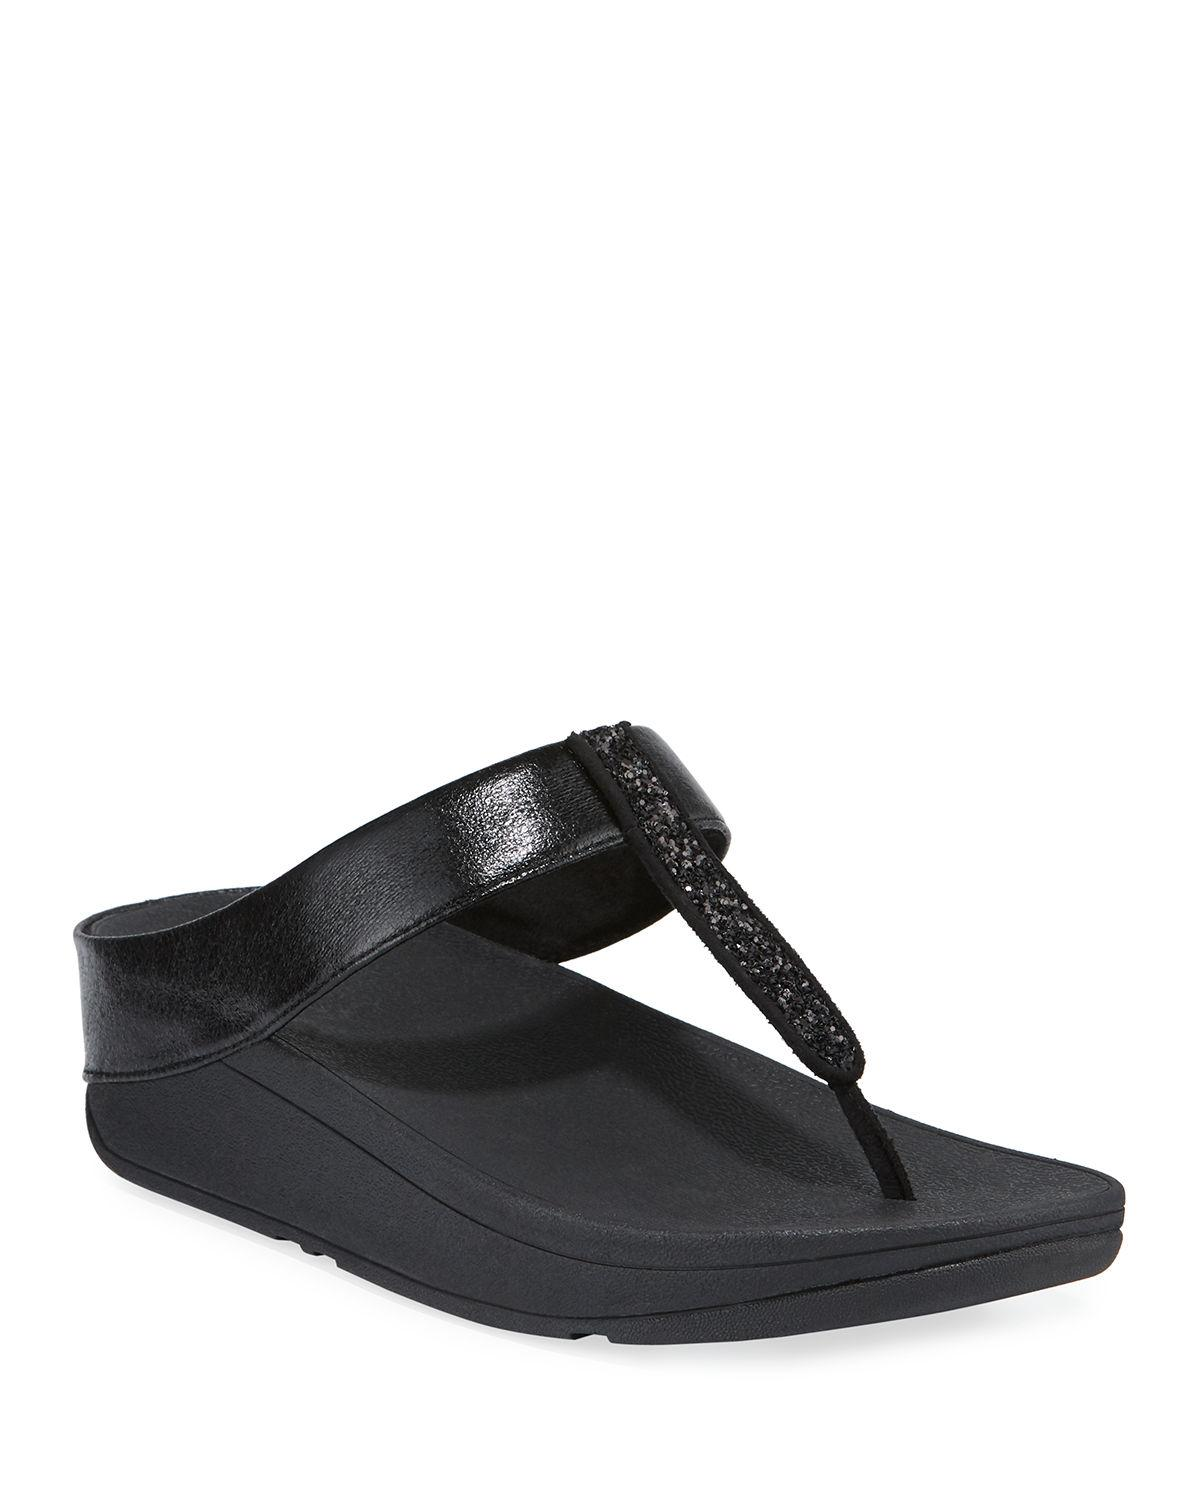 a92710573 Lyst - Fitflop Fino Glittered Metallic Thong Sandals in Black